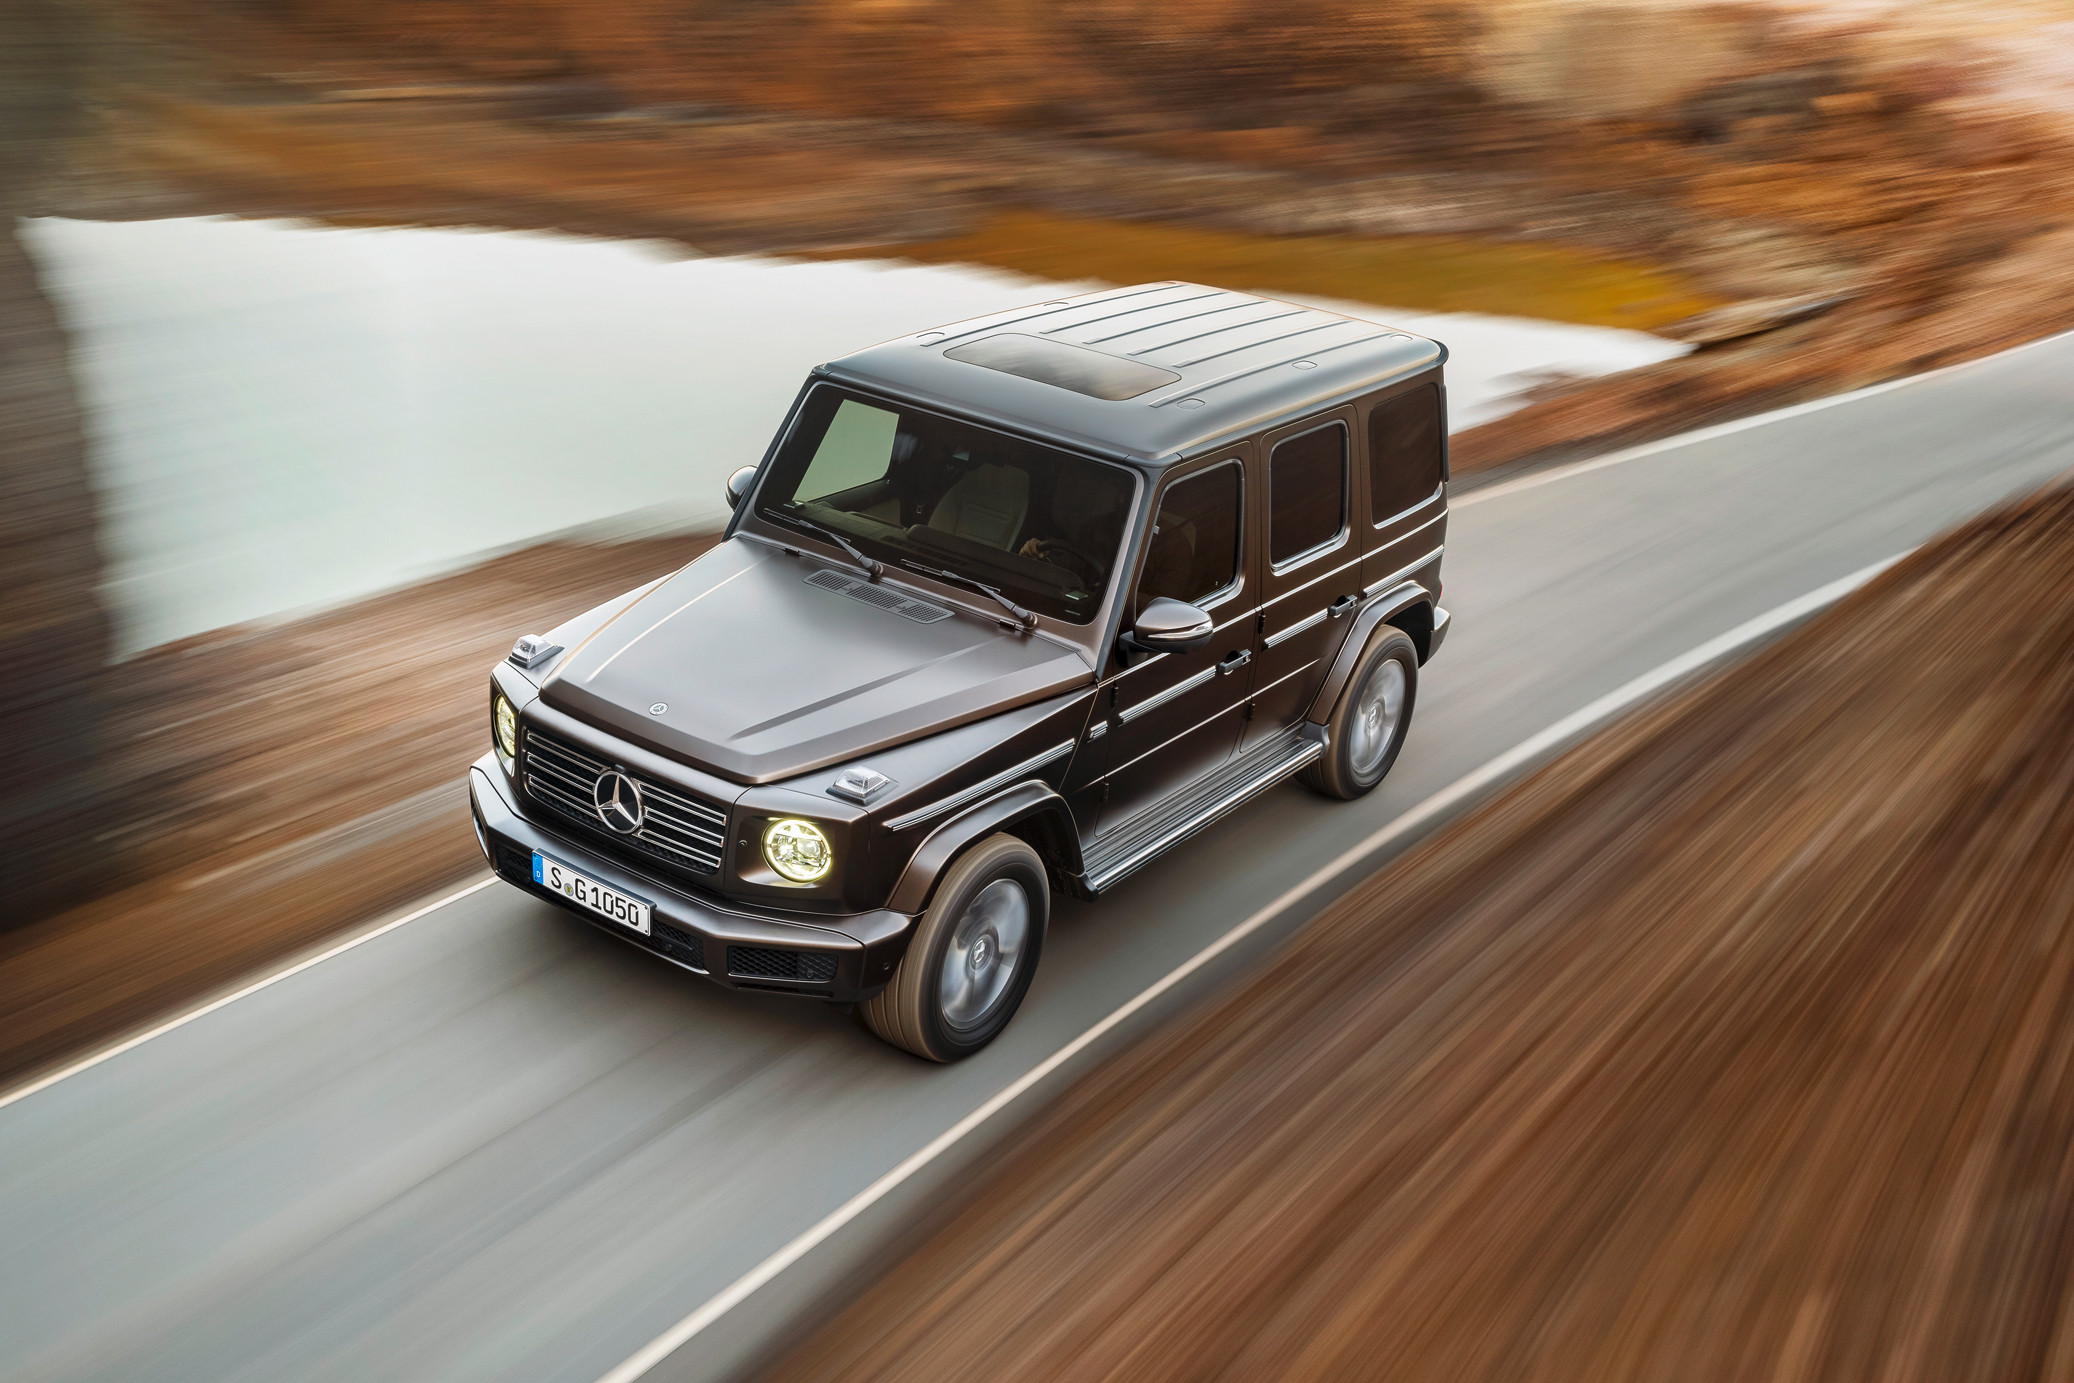 Mercedes Benz. North American International Auto Show G Series G 500 NAIAS  Detroit G Wagon